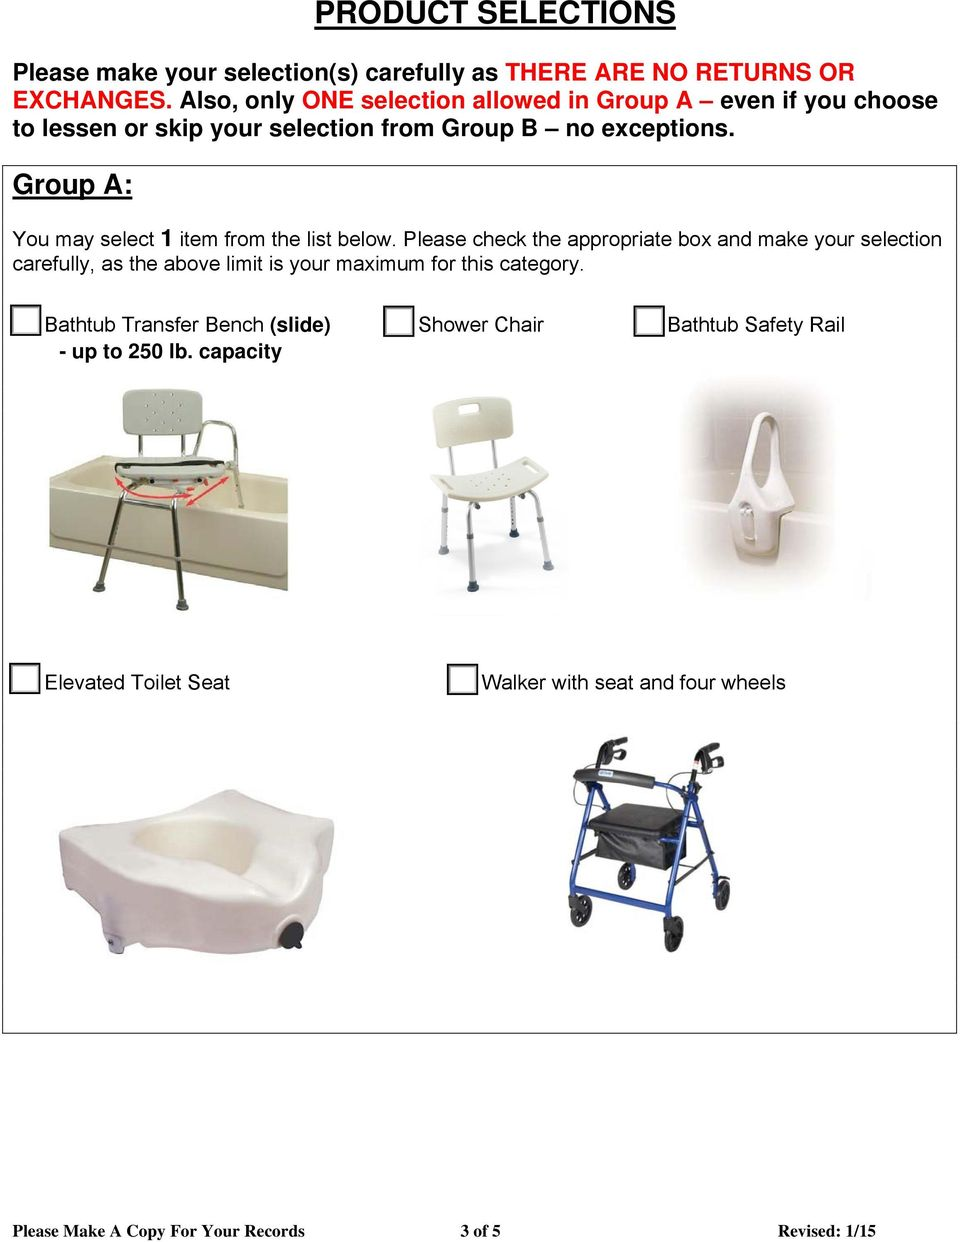 Group A: You may select 1 item from the list below.